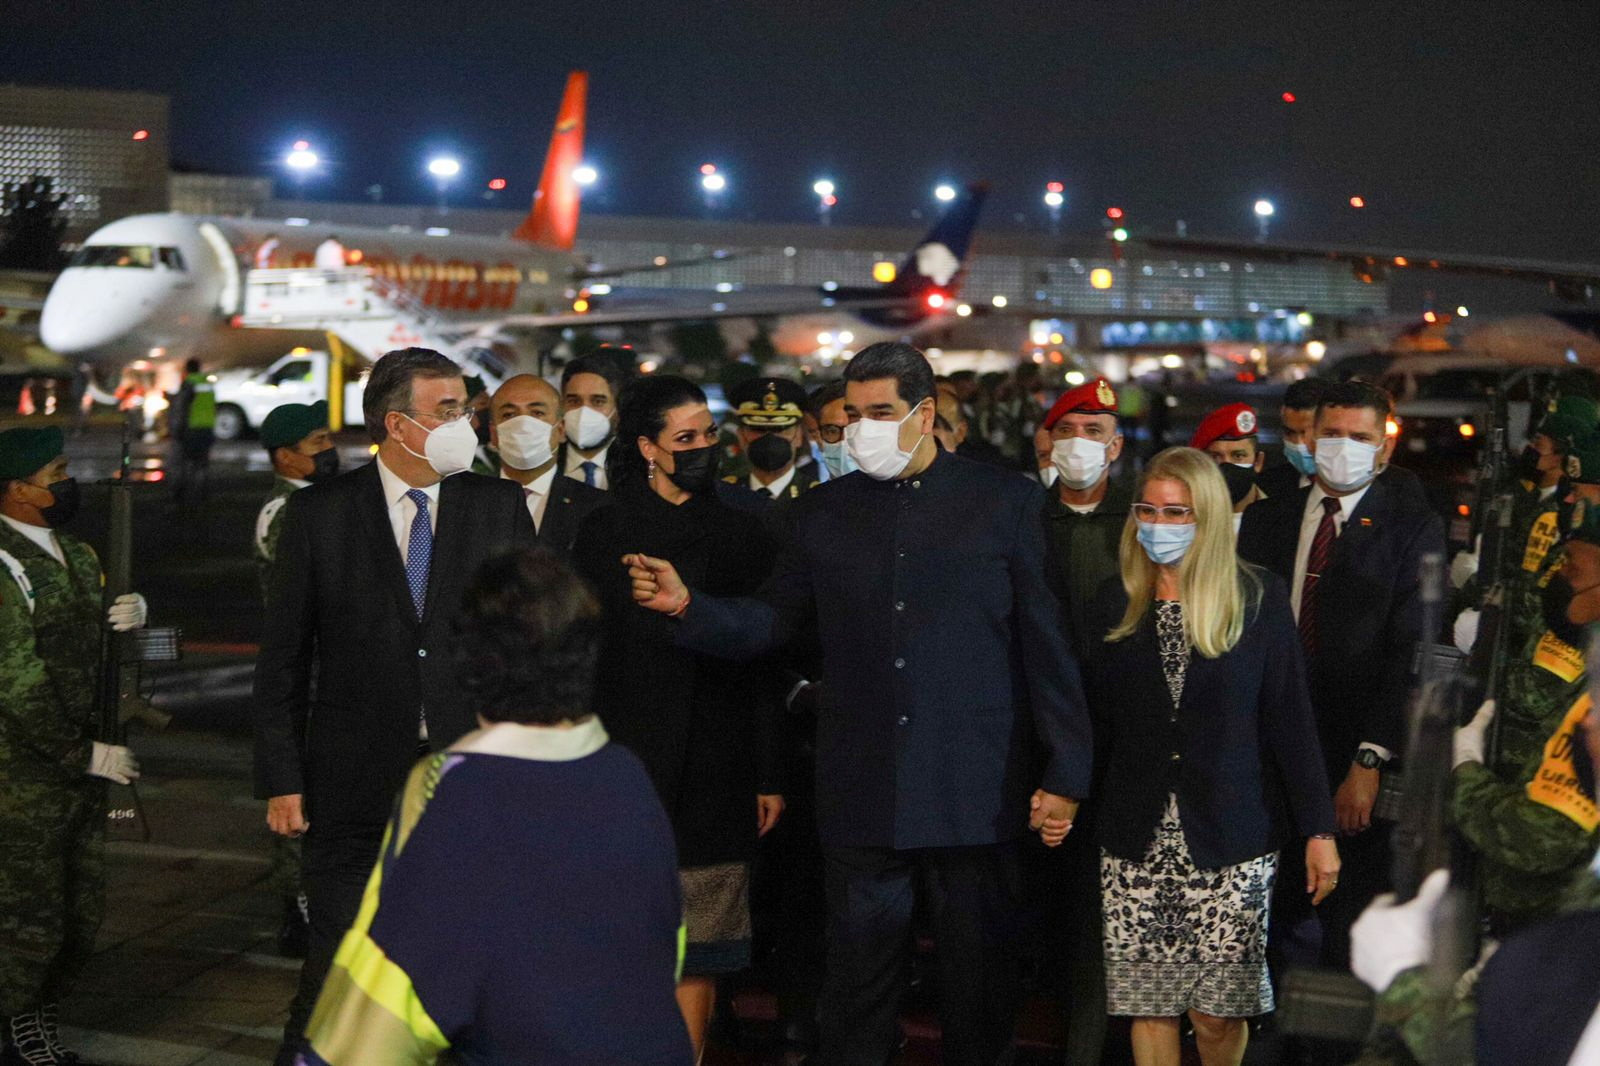 Mexico's Foreign Relations Minister Marcelo Ebrard chats with Venezuelan President Nicolas Maduro, flanked by his wife Rosalinda Bueso and National Assembly member and first lady Cilia Flores, at the Benito Juarez International airport ahead of the summit of the Community of Latin American and Caribbean States (CELAC), in Mexico City, Mexico September 17, 2021. Mexico's Foreign Relations Ministry/Handout via REUTERS